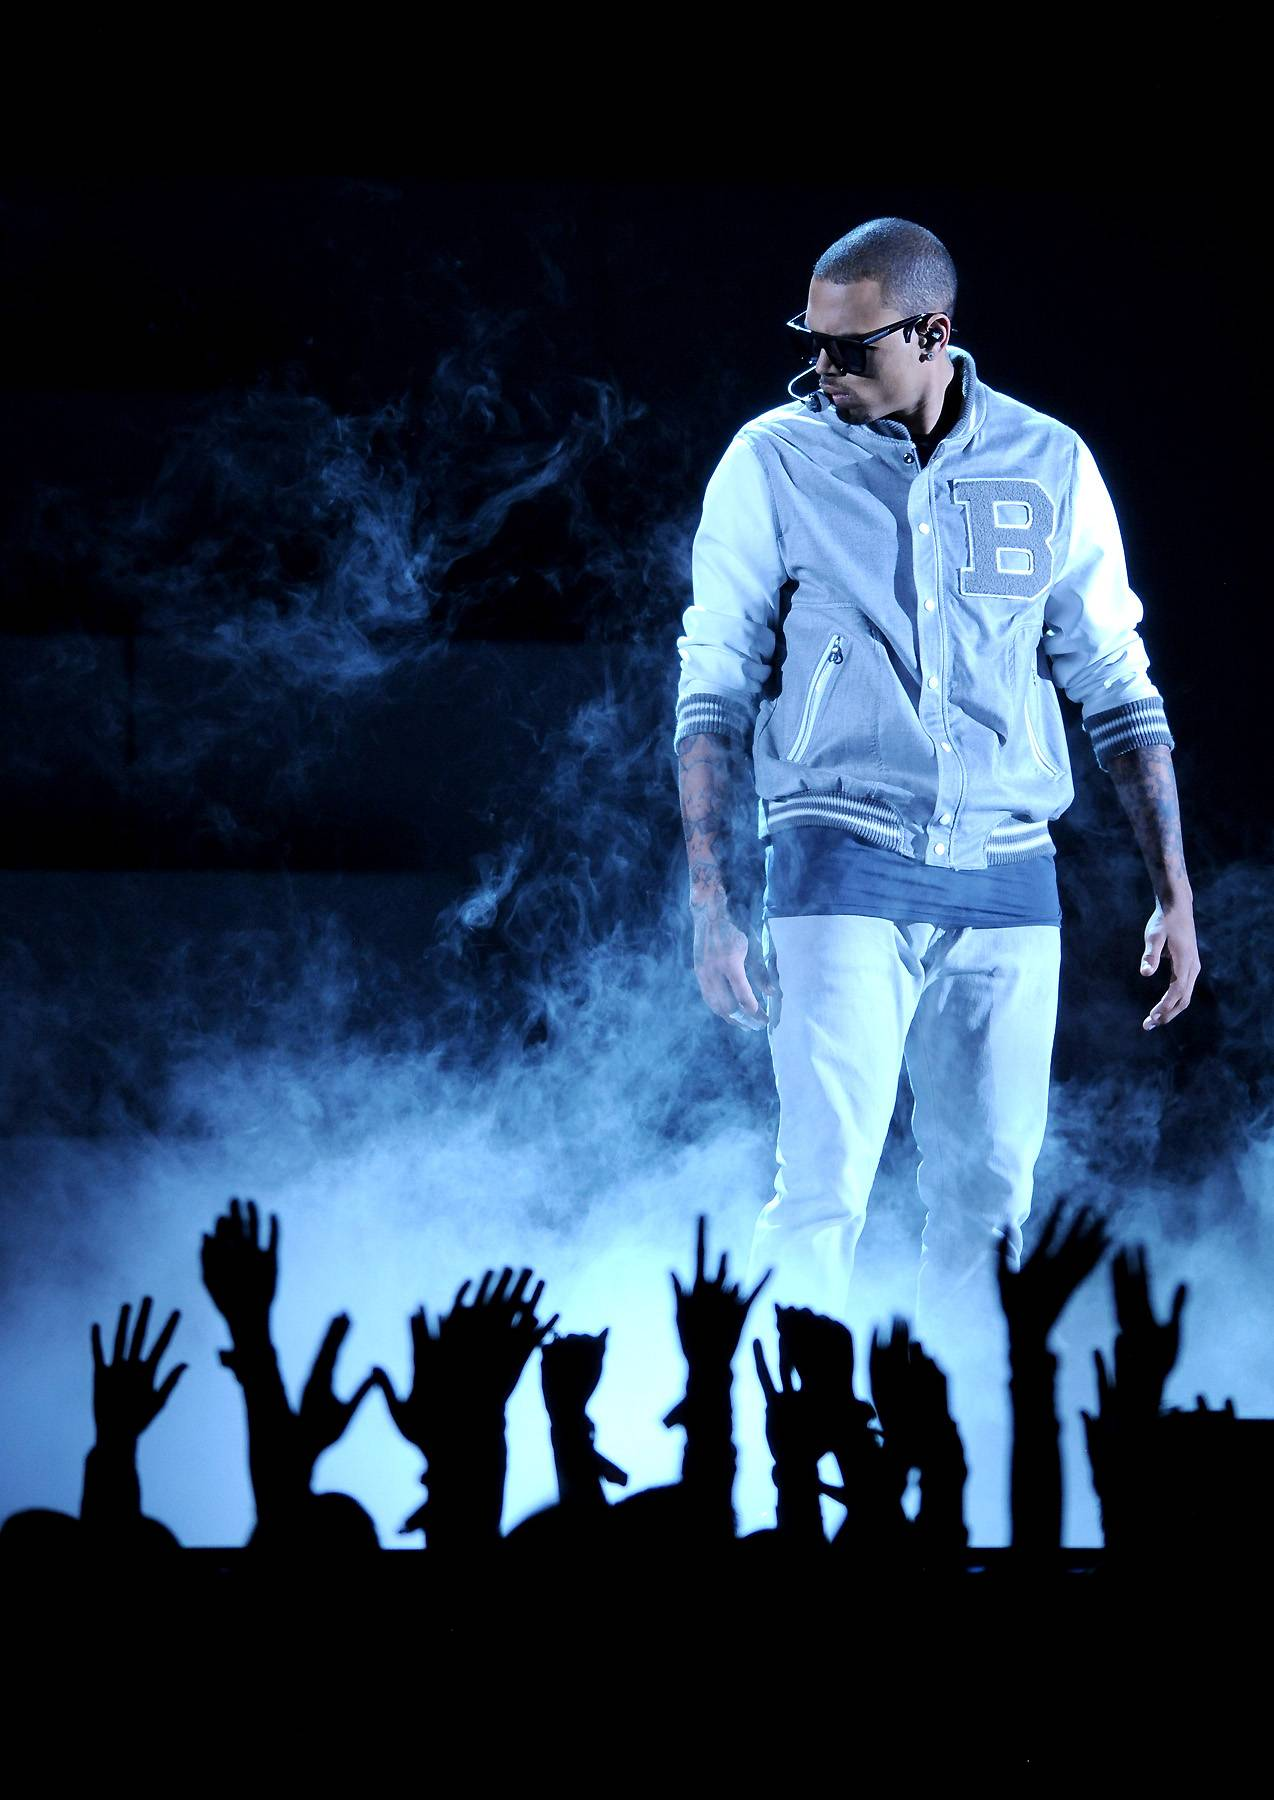 The Evolution of Chris Brown - With Chris Brown's triumphant return to the 2012 Grammys ? he performed twice and took home hardware for Best R&B Album ? is Breezy finally moving beyond his troubled past? We hope so, and we'll be updating this timeline as the Evolution of Chris Brown continues.(Photo: Frank Micelotta/PictureGroup)